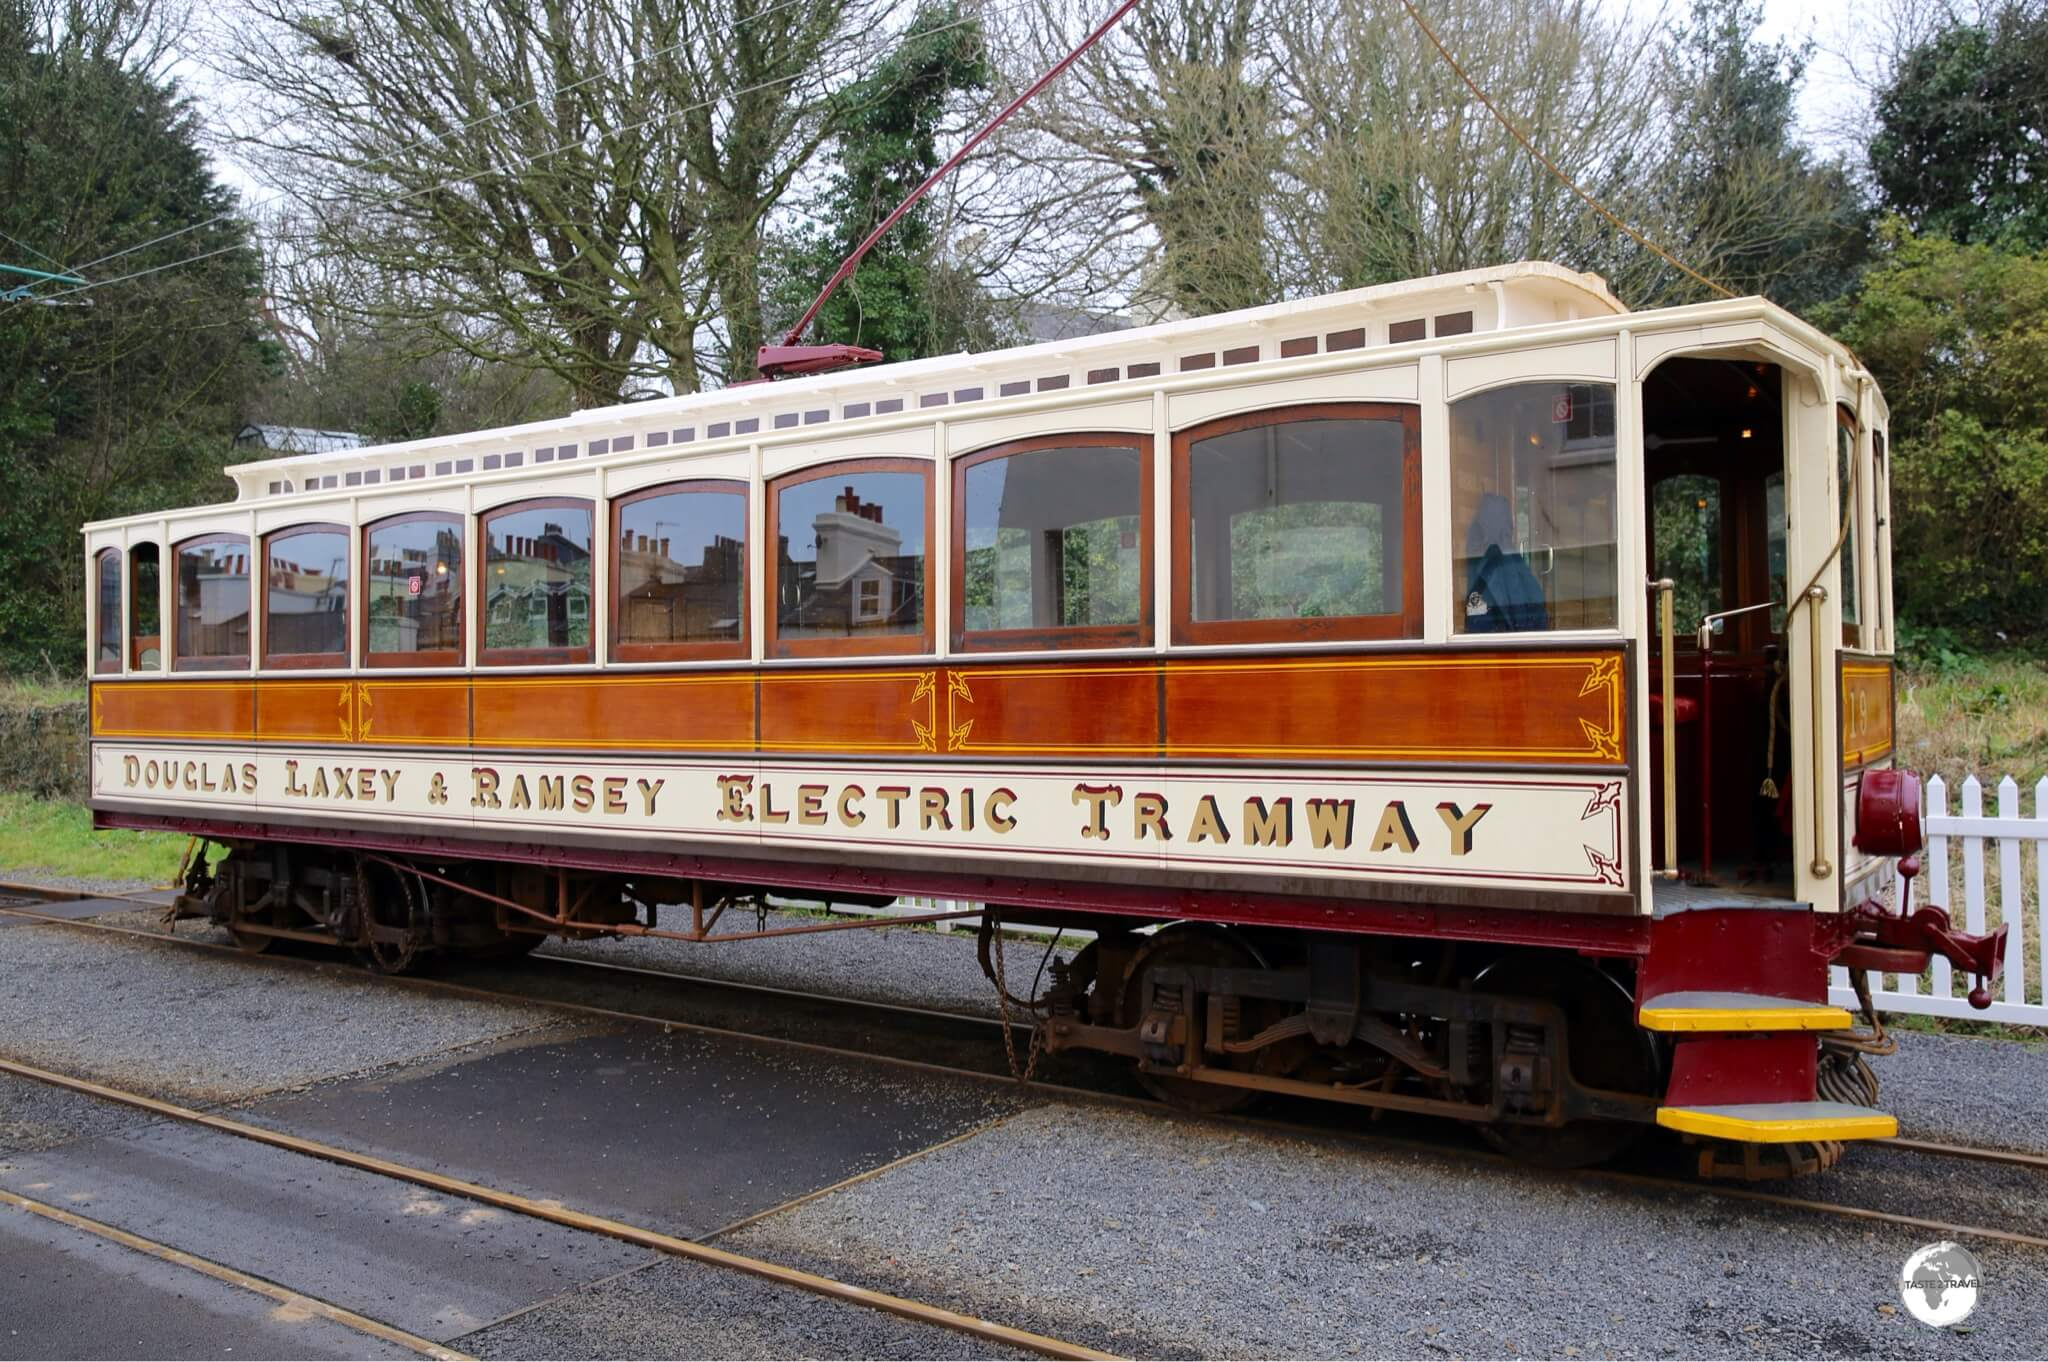 The Manx Electric railway ready to depart from Ramsay station for Douglas.